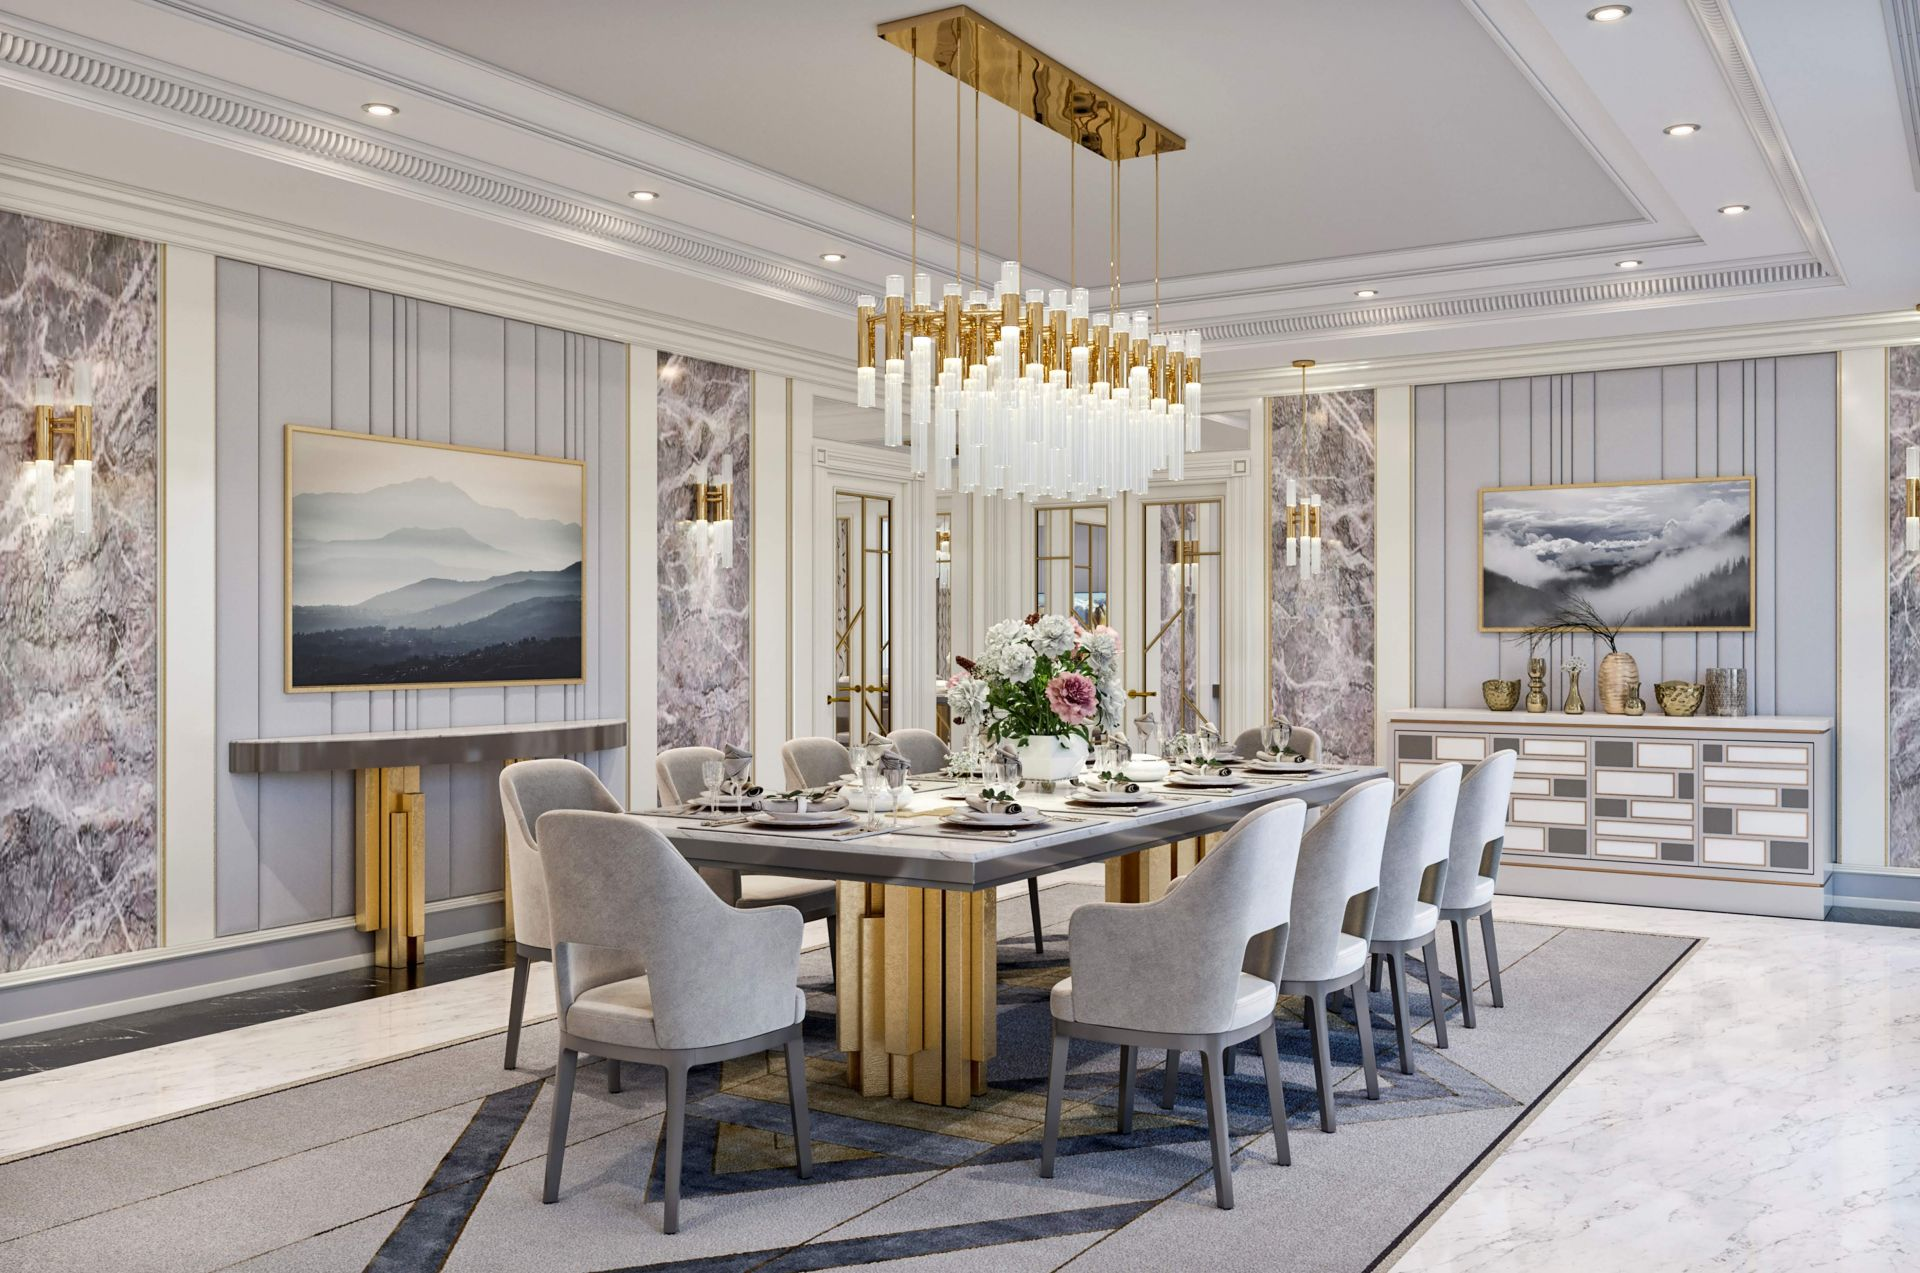 Interior Design Of The Living Dining Room In The Hilton Hotel